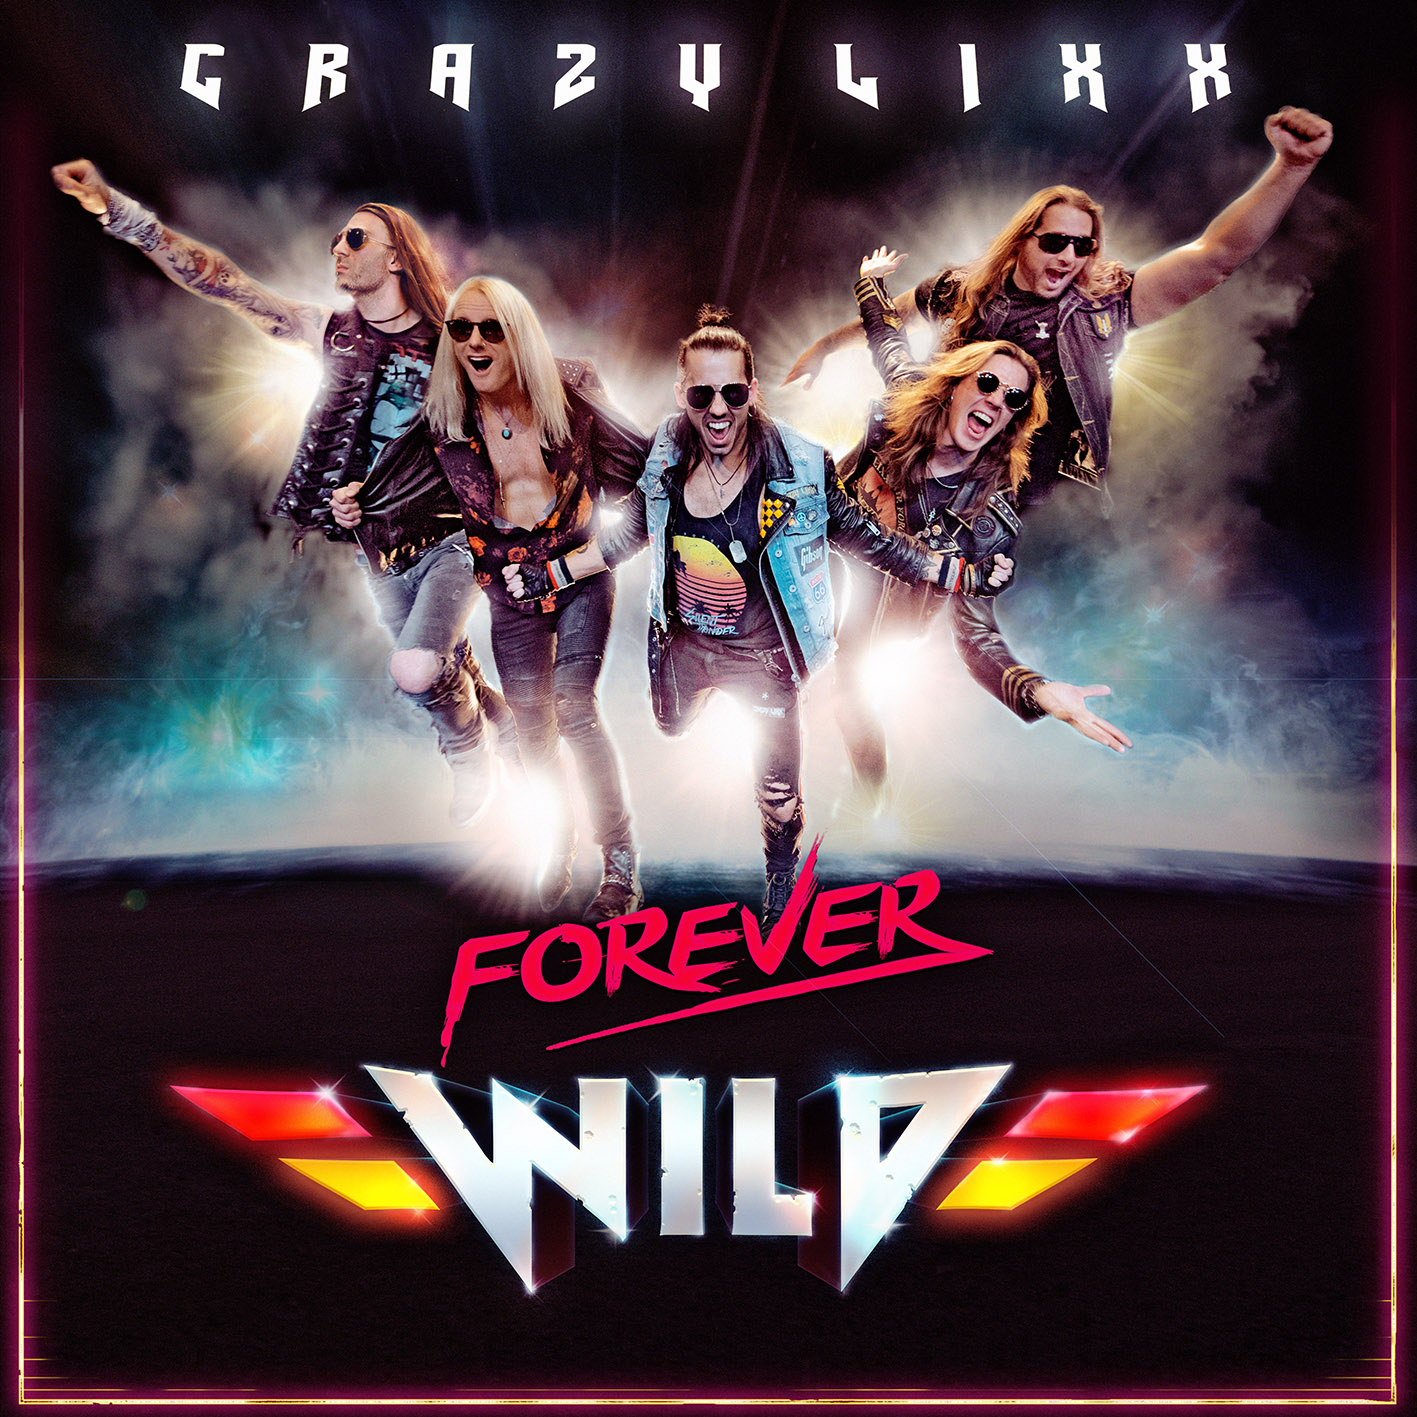 Friday Release Pick Of The Week: Crazy Lixx - Forever Wild